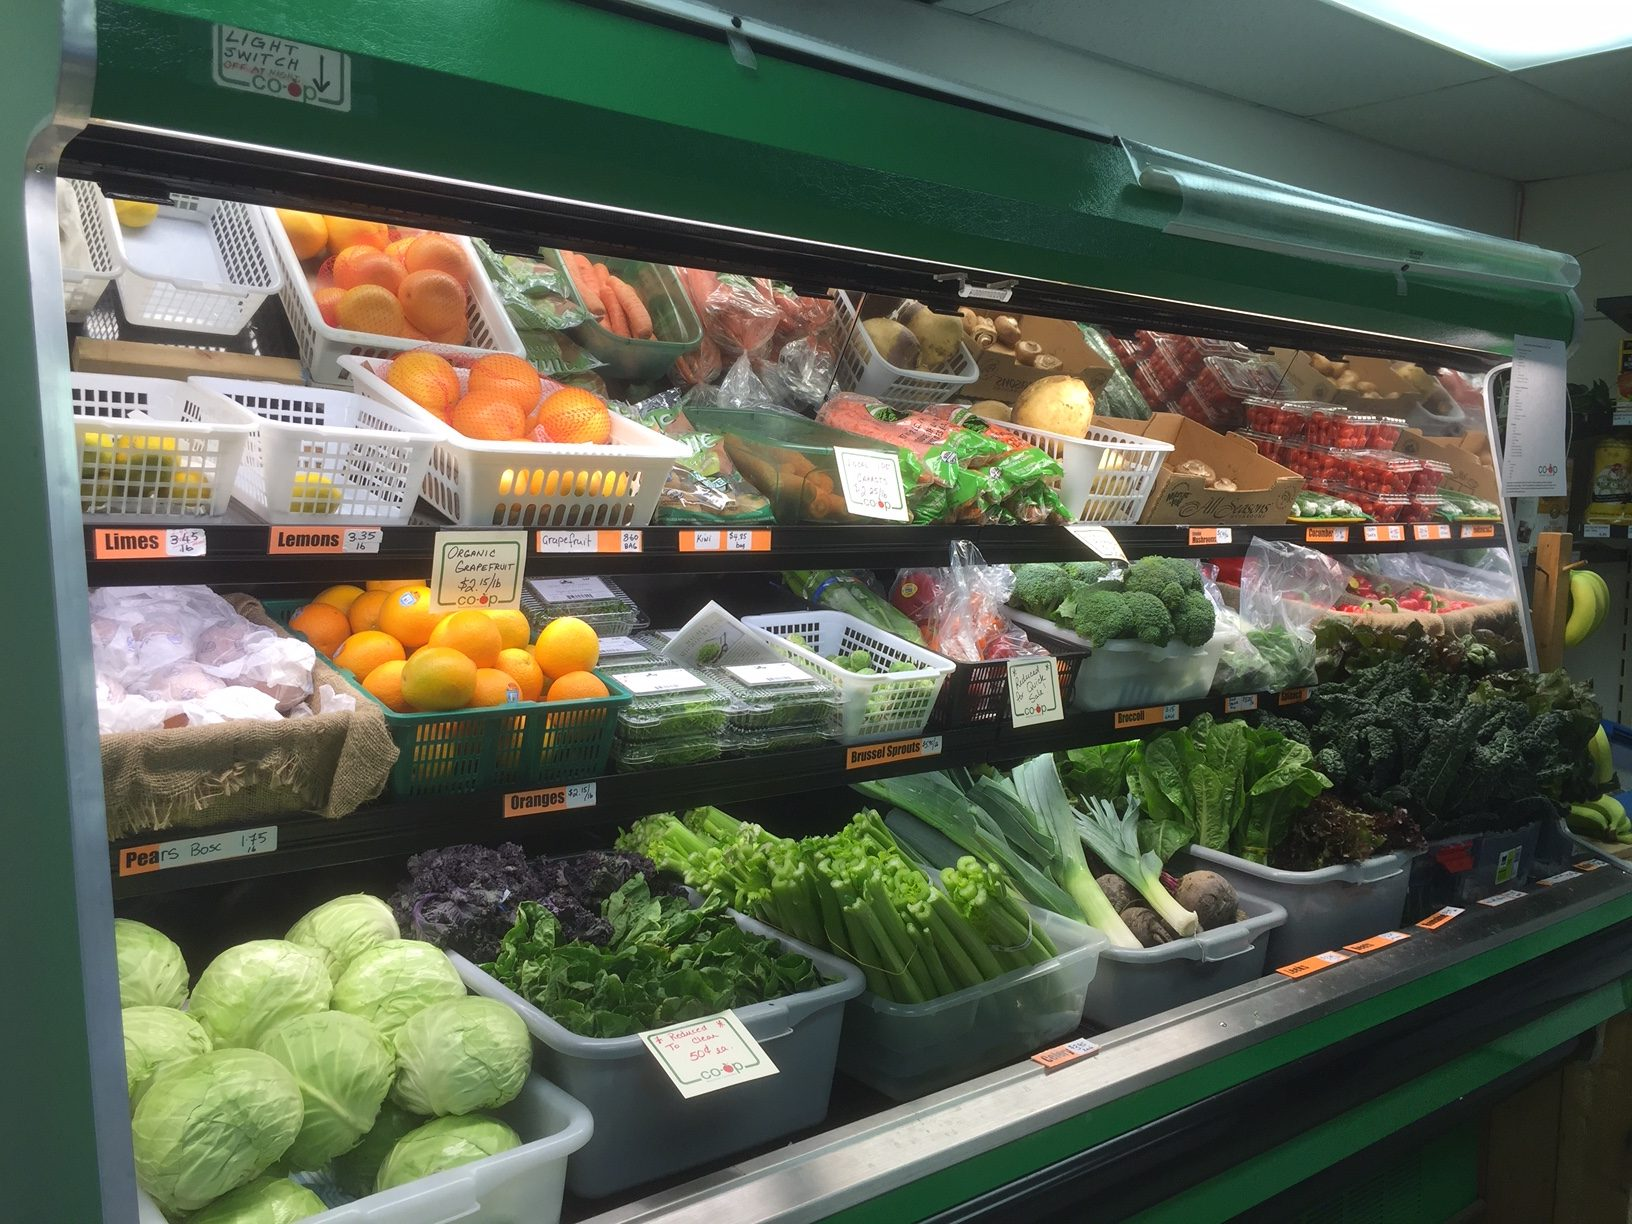 Produce cooler with organic bounty, celery, lettuce, carrots